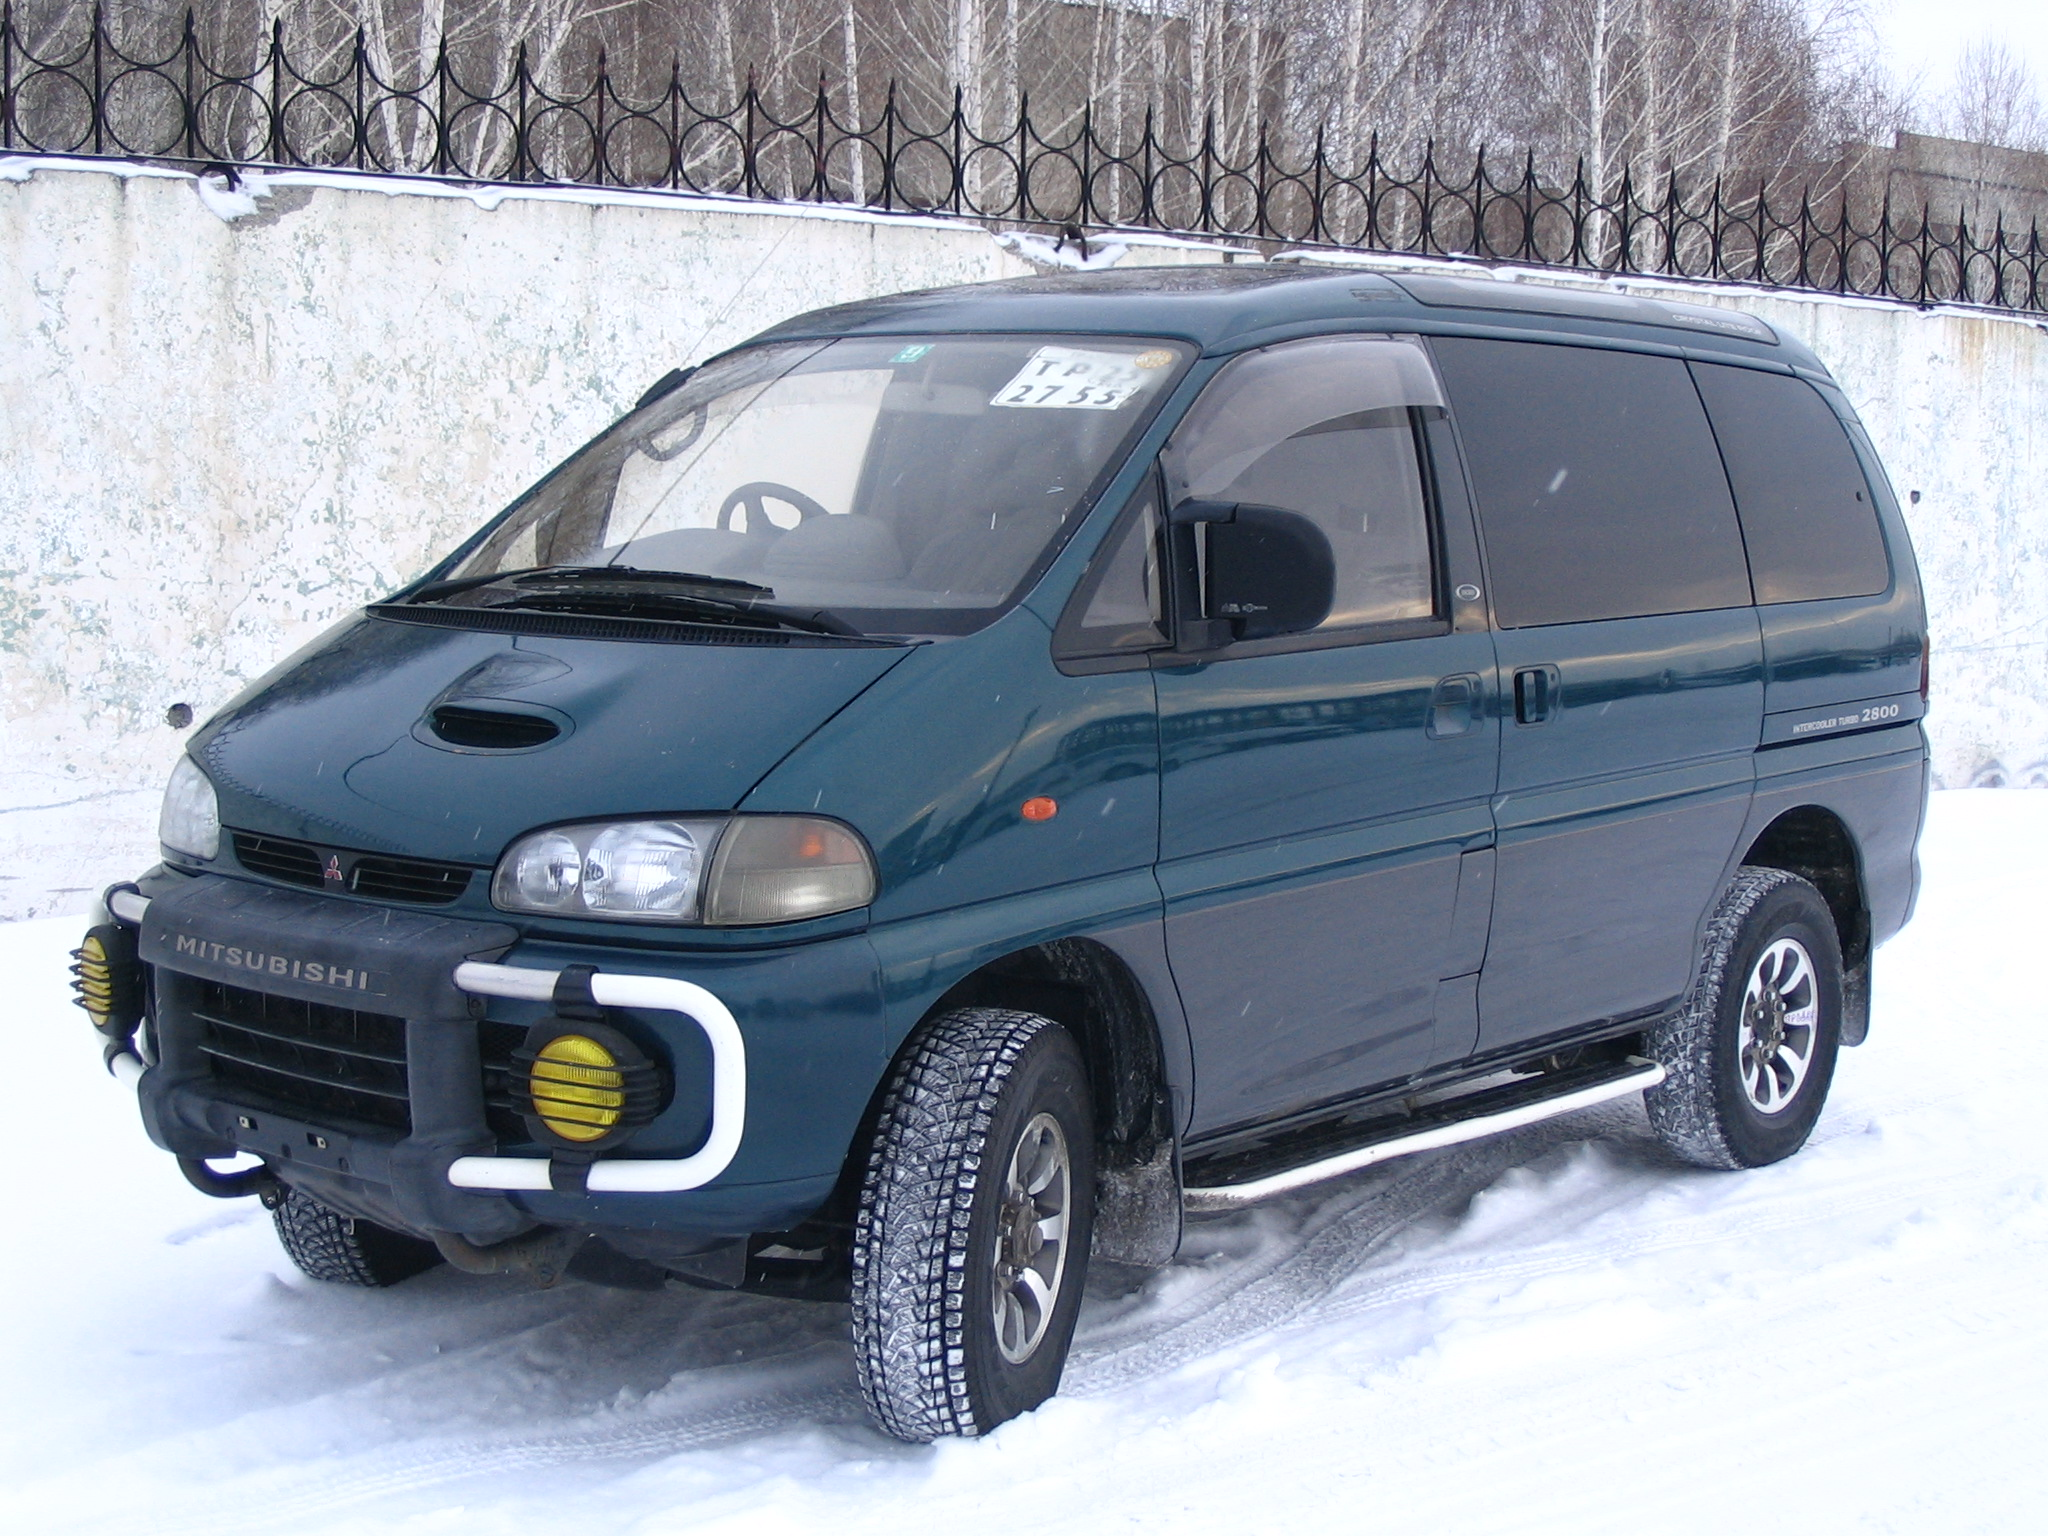 1996 Mitsubishi Delica Pictures, 2800cc., Diesel, Automatic For Sale